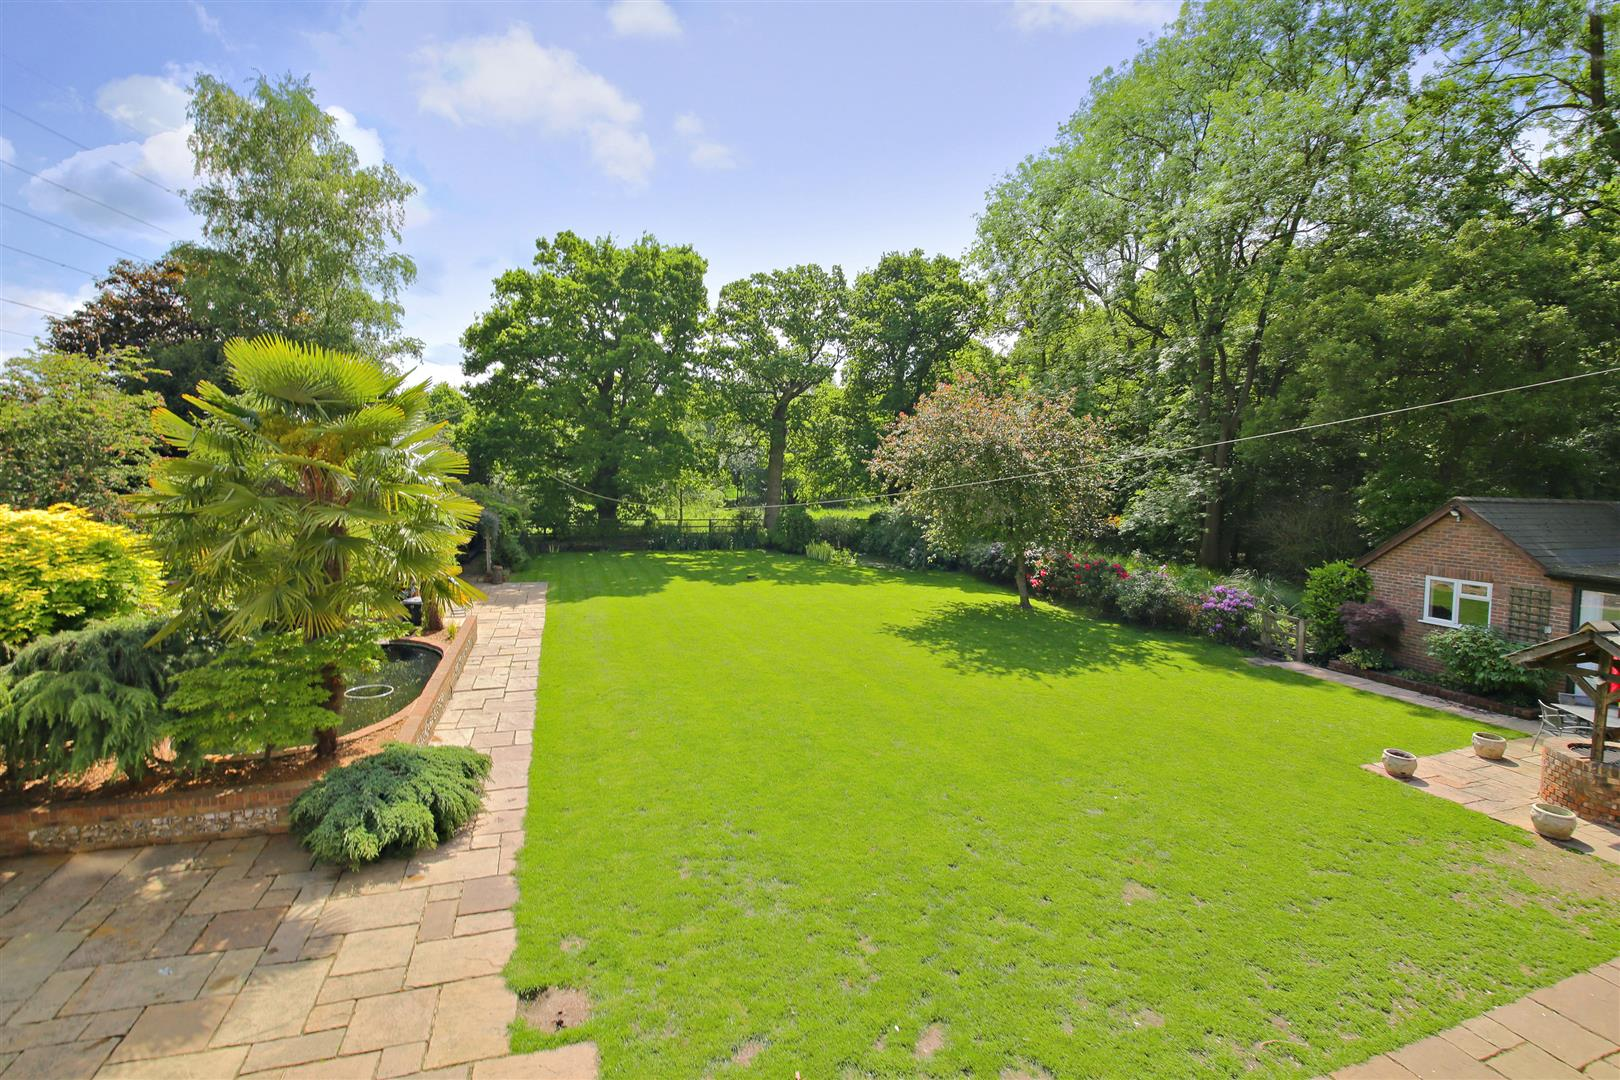 3 bed for sale in Station Road, Bricket Wood - (Property Image 14)